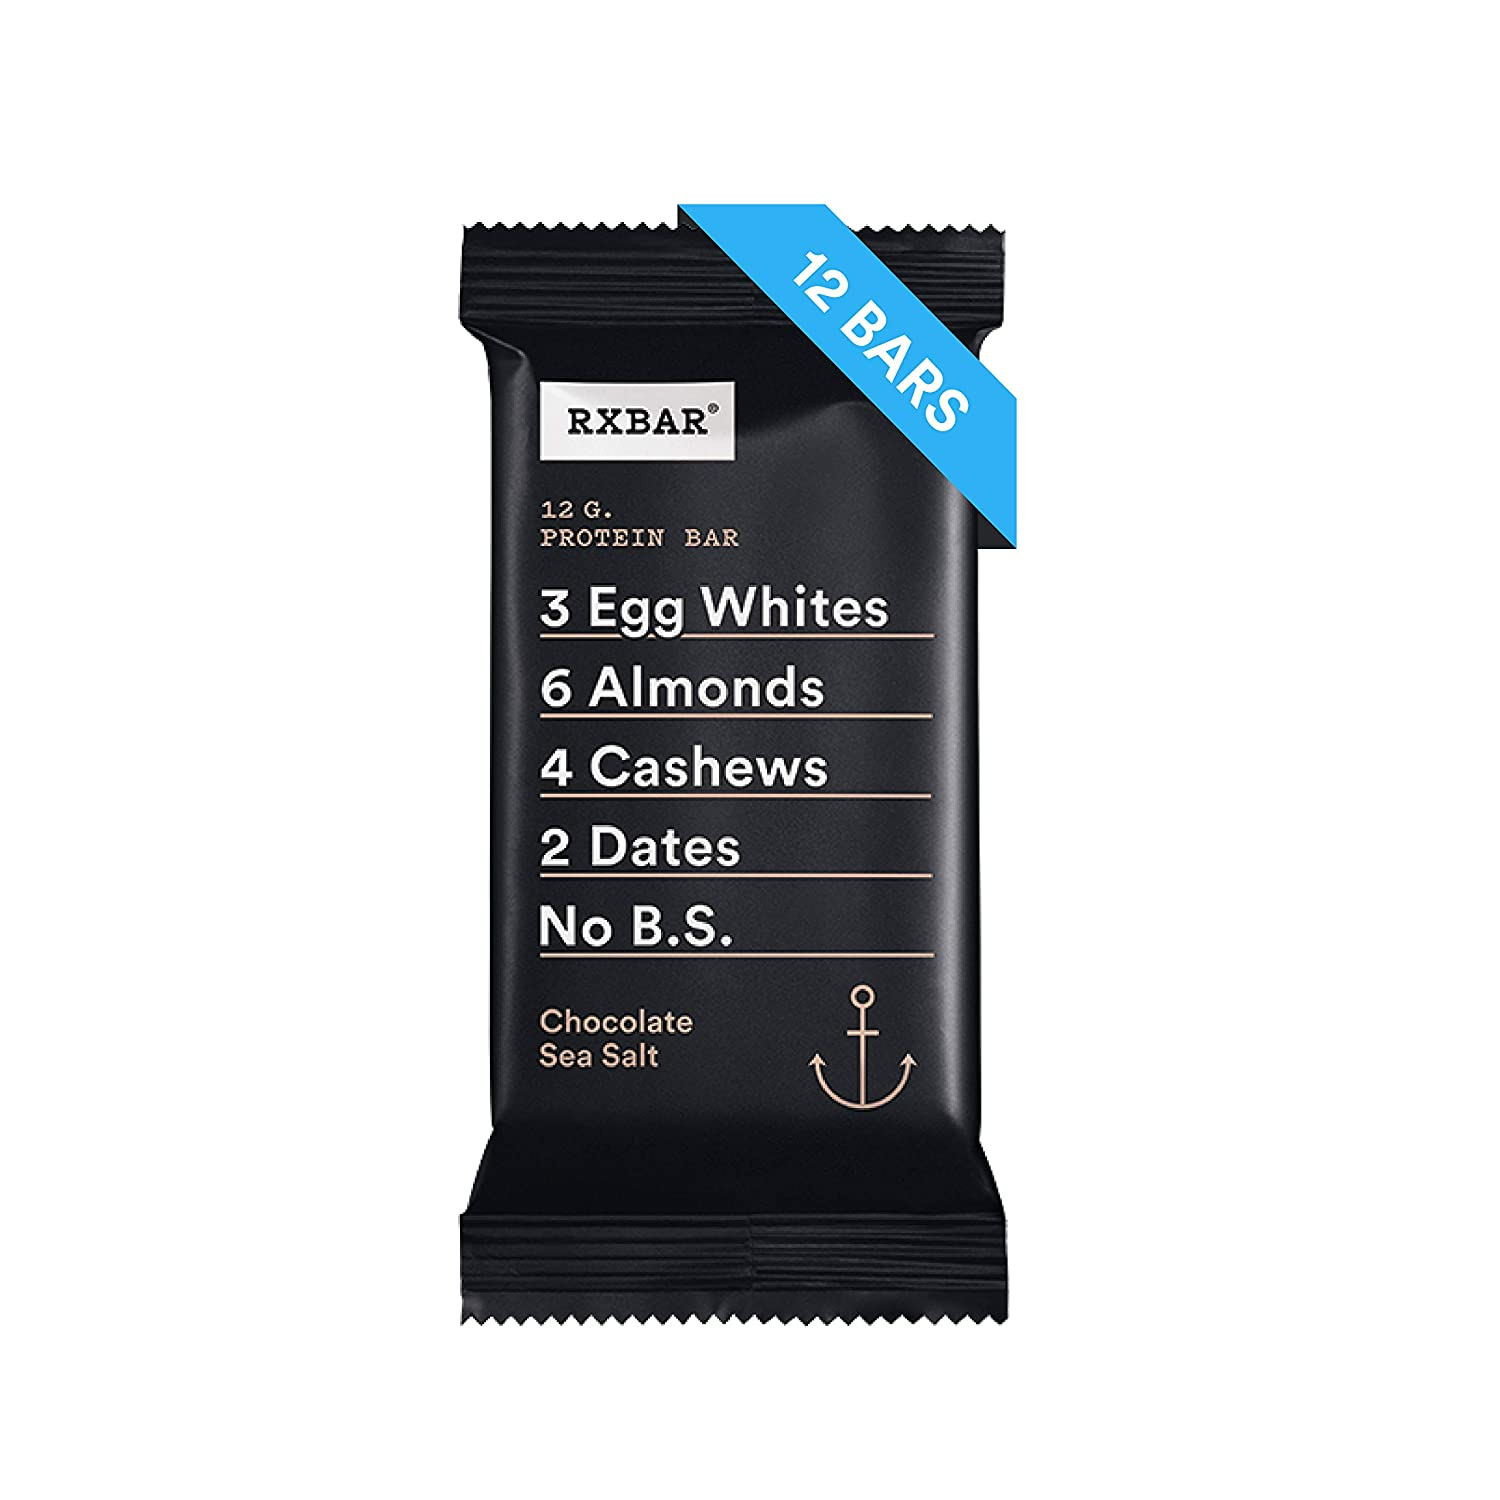 RXBAR, Chocolate Sea Salt, Breakfast Bar,High Protein Snack, 1.83 Ounce, Pack of 12